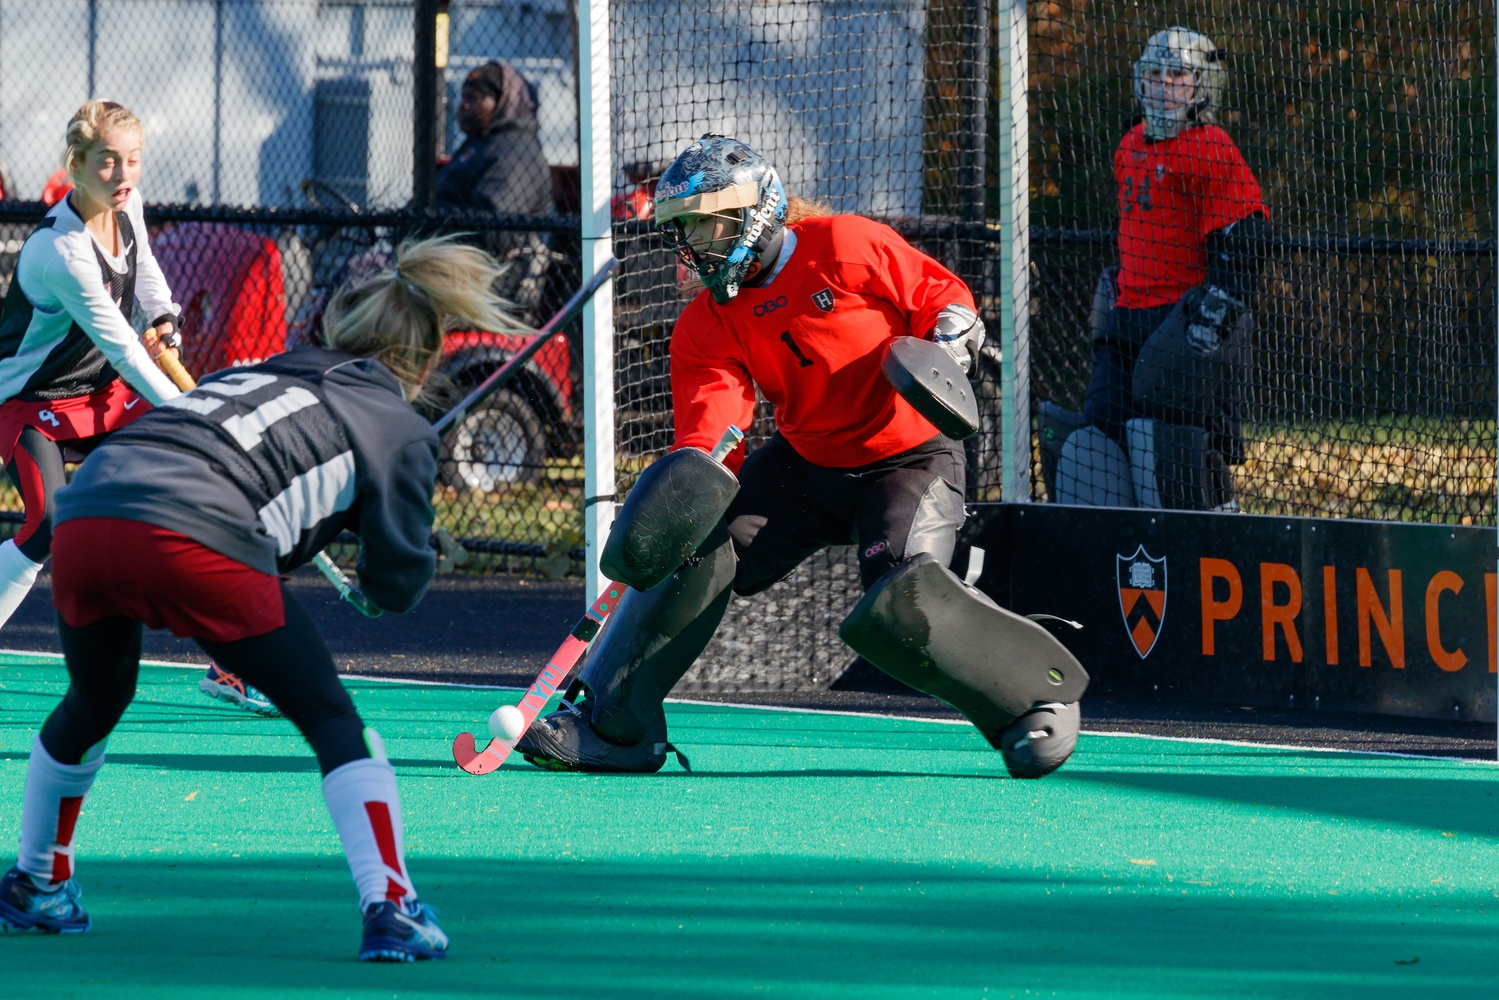 Freshman Ellie Shahbo was named the Ivy League Rookie of the Year at the conclusion of the season.